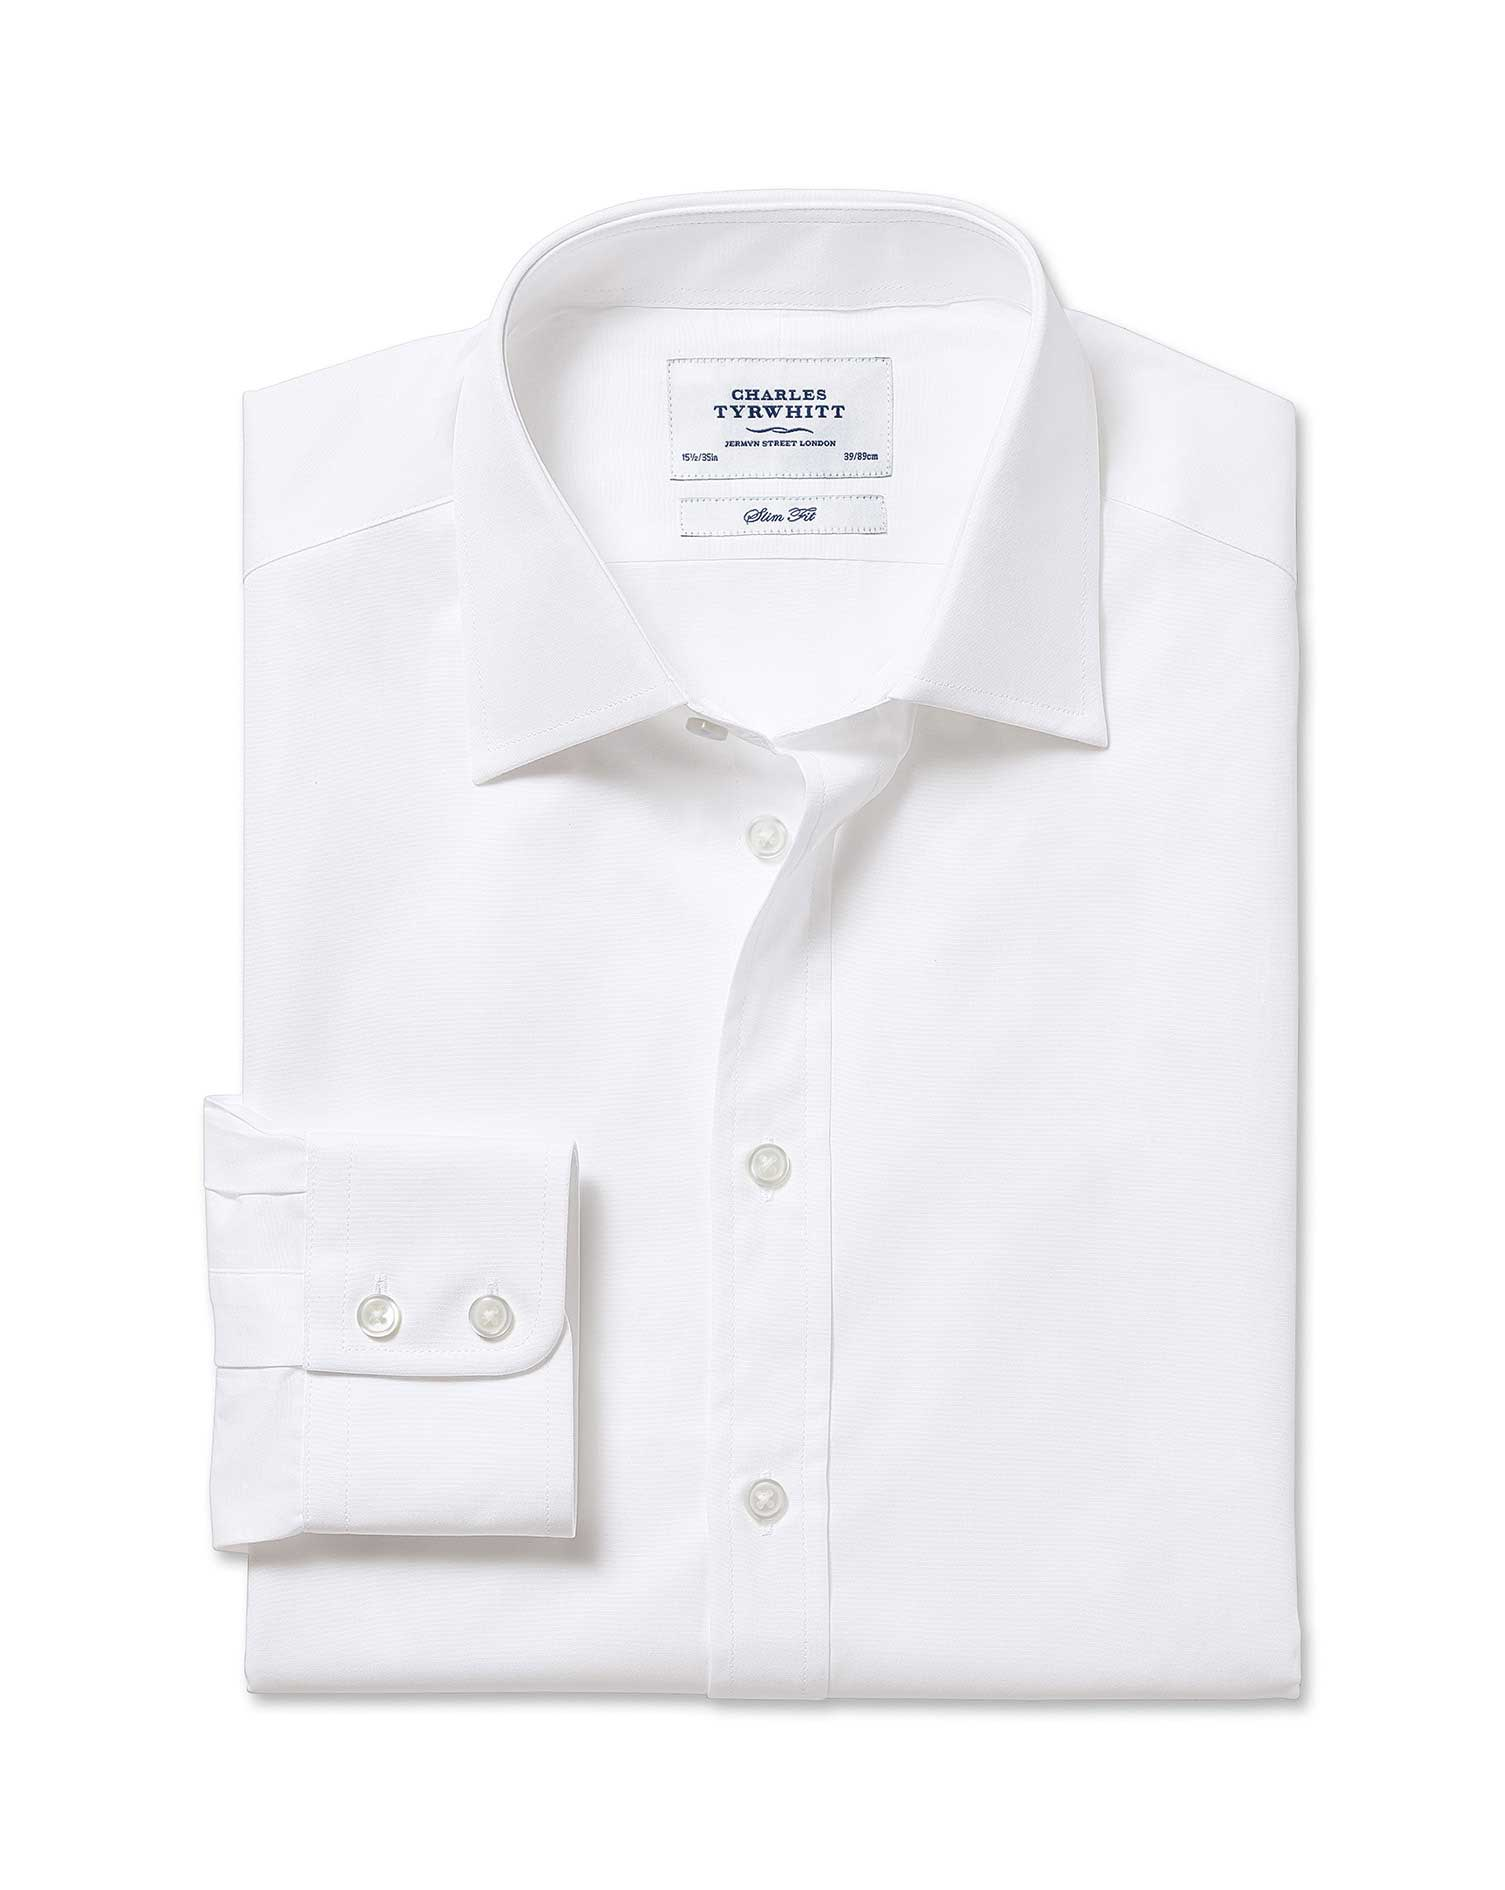 Extra Slim Fit Egyptian Cotton Poplin White Formal Shirt Single Cuff Size 15.5/32 by Charles Tyrwhit